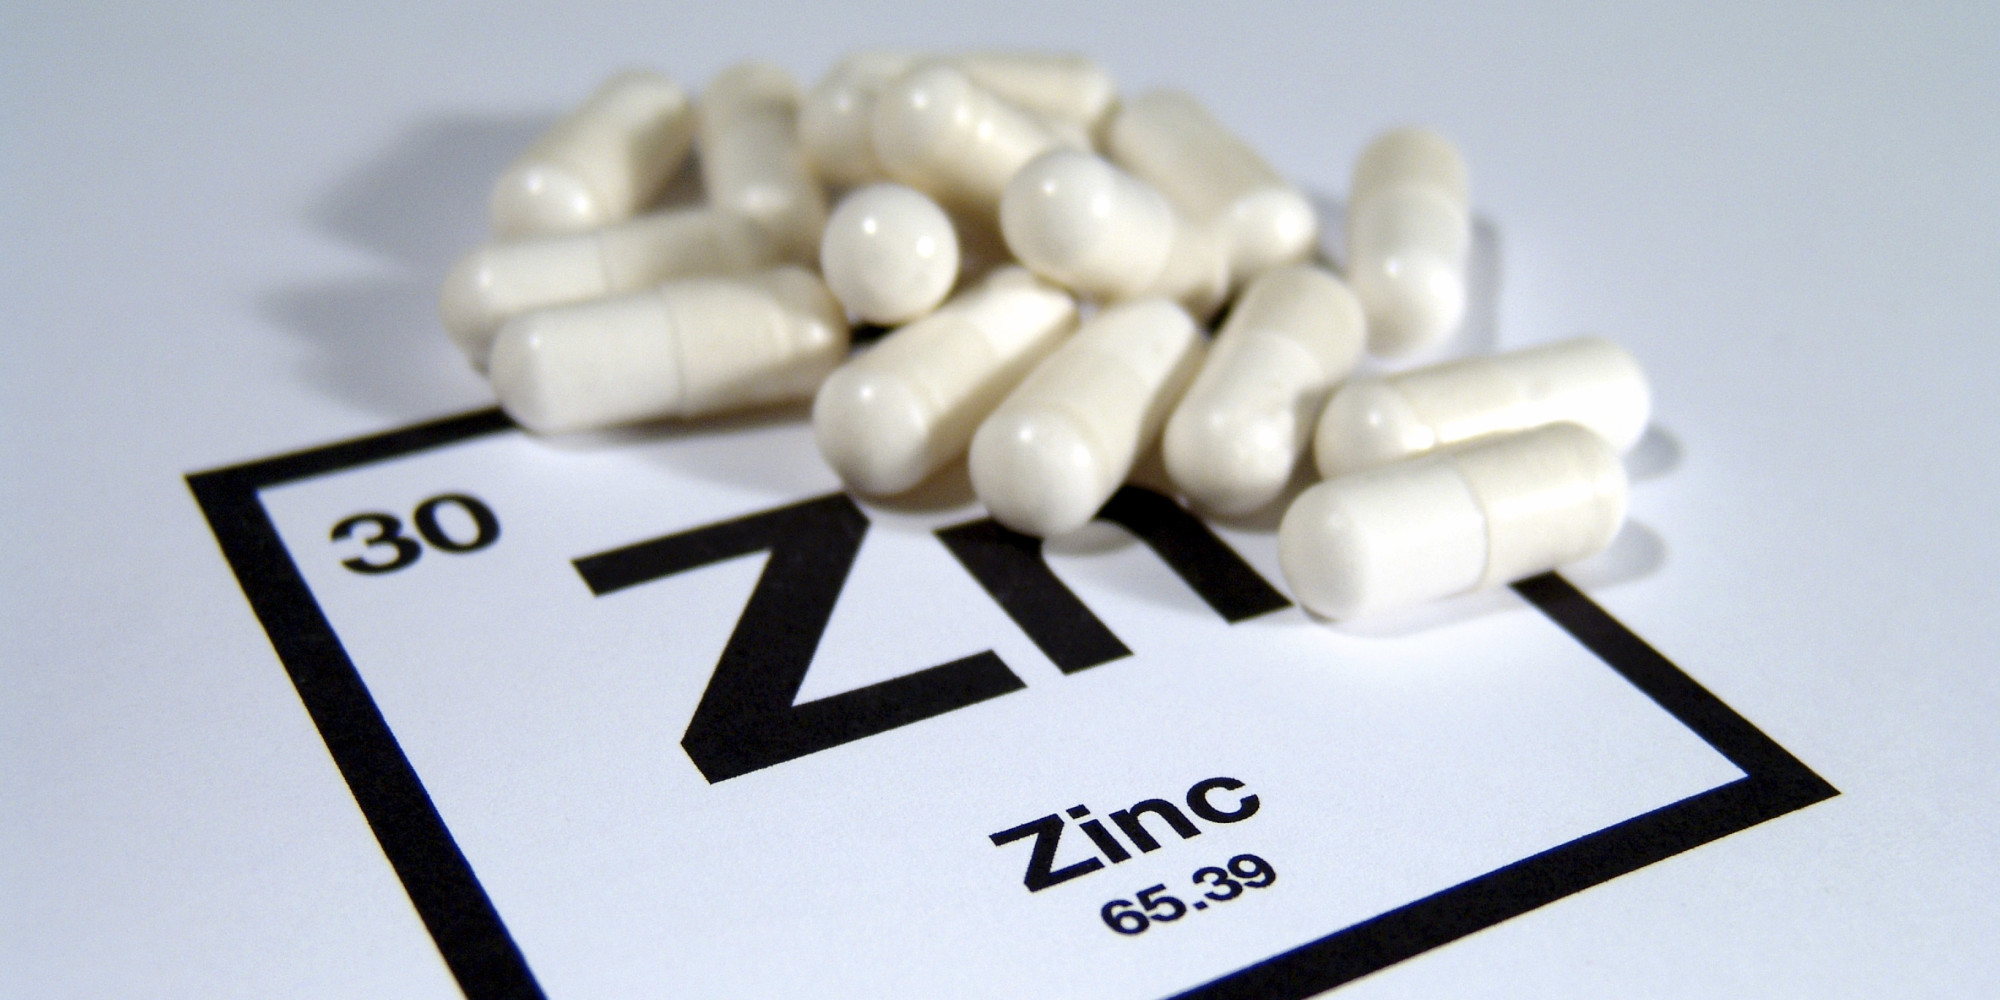 Zinc to Boost Immune System